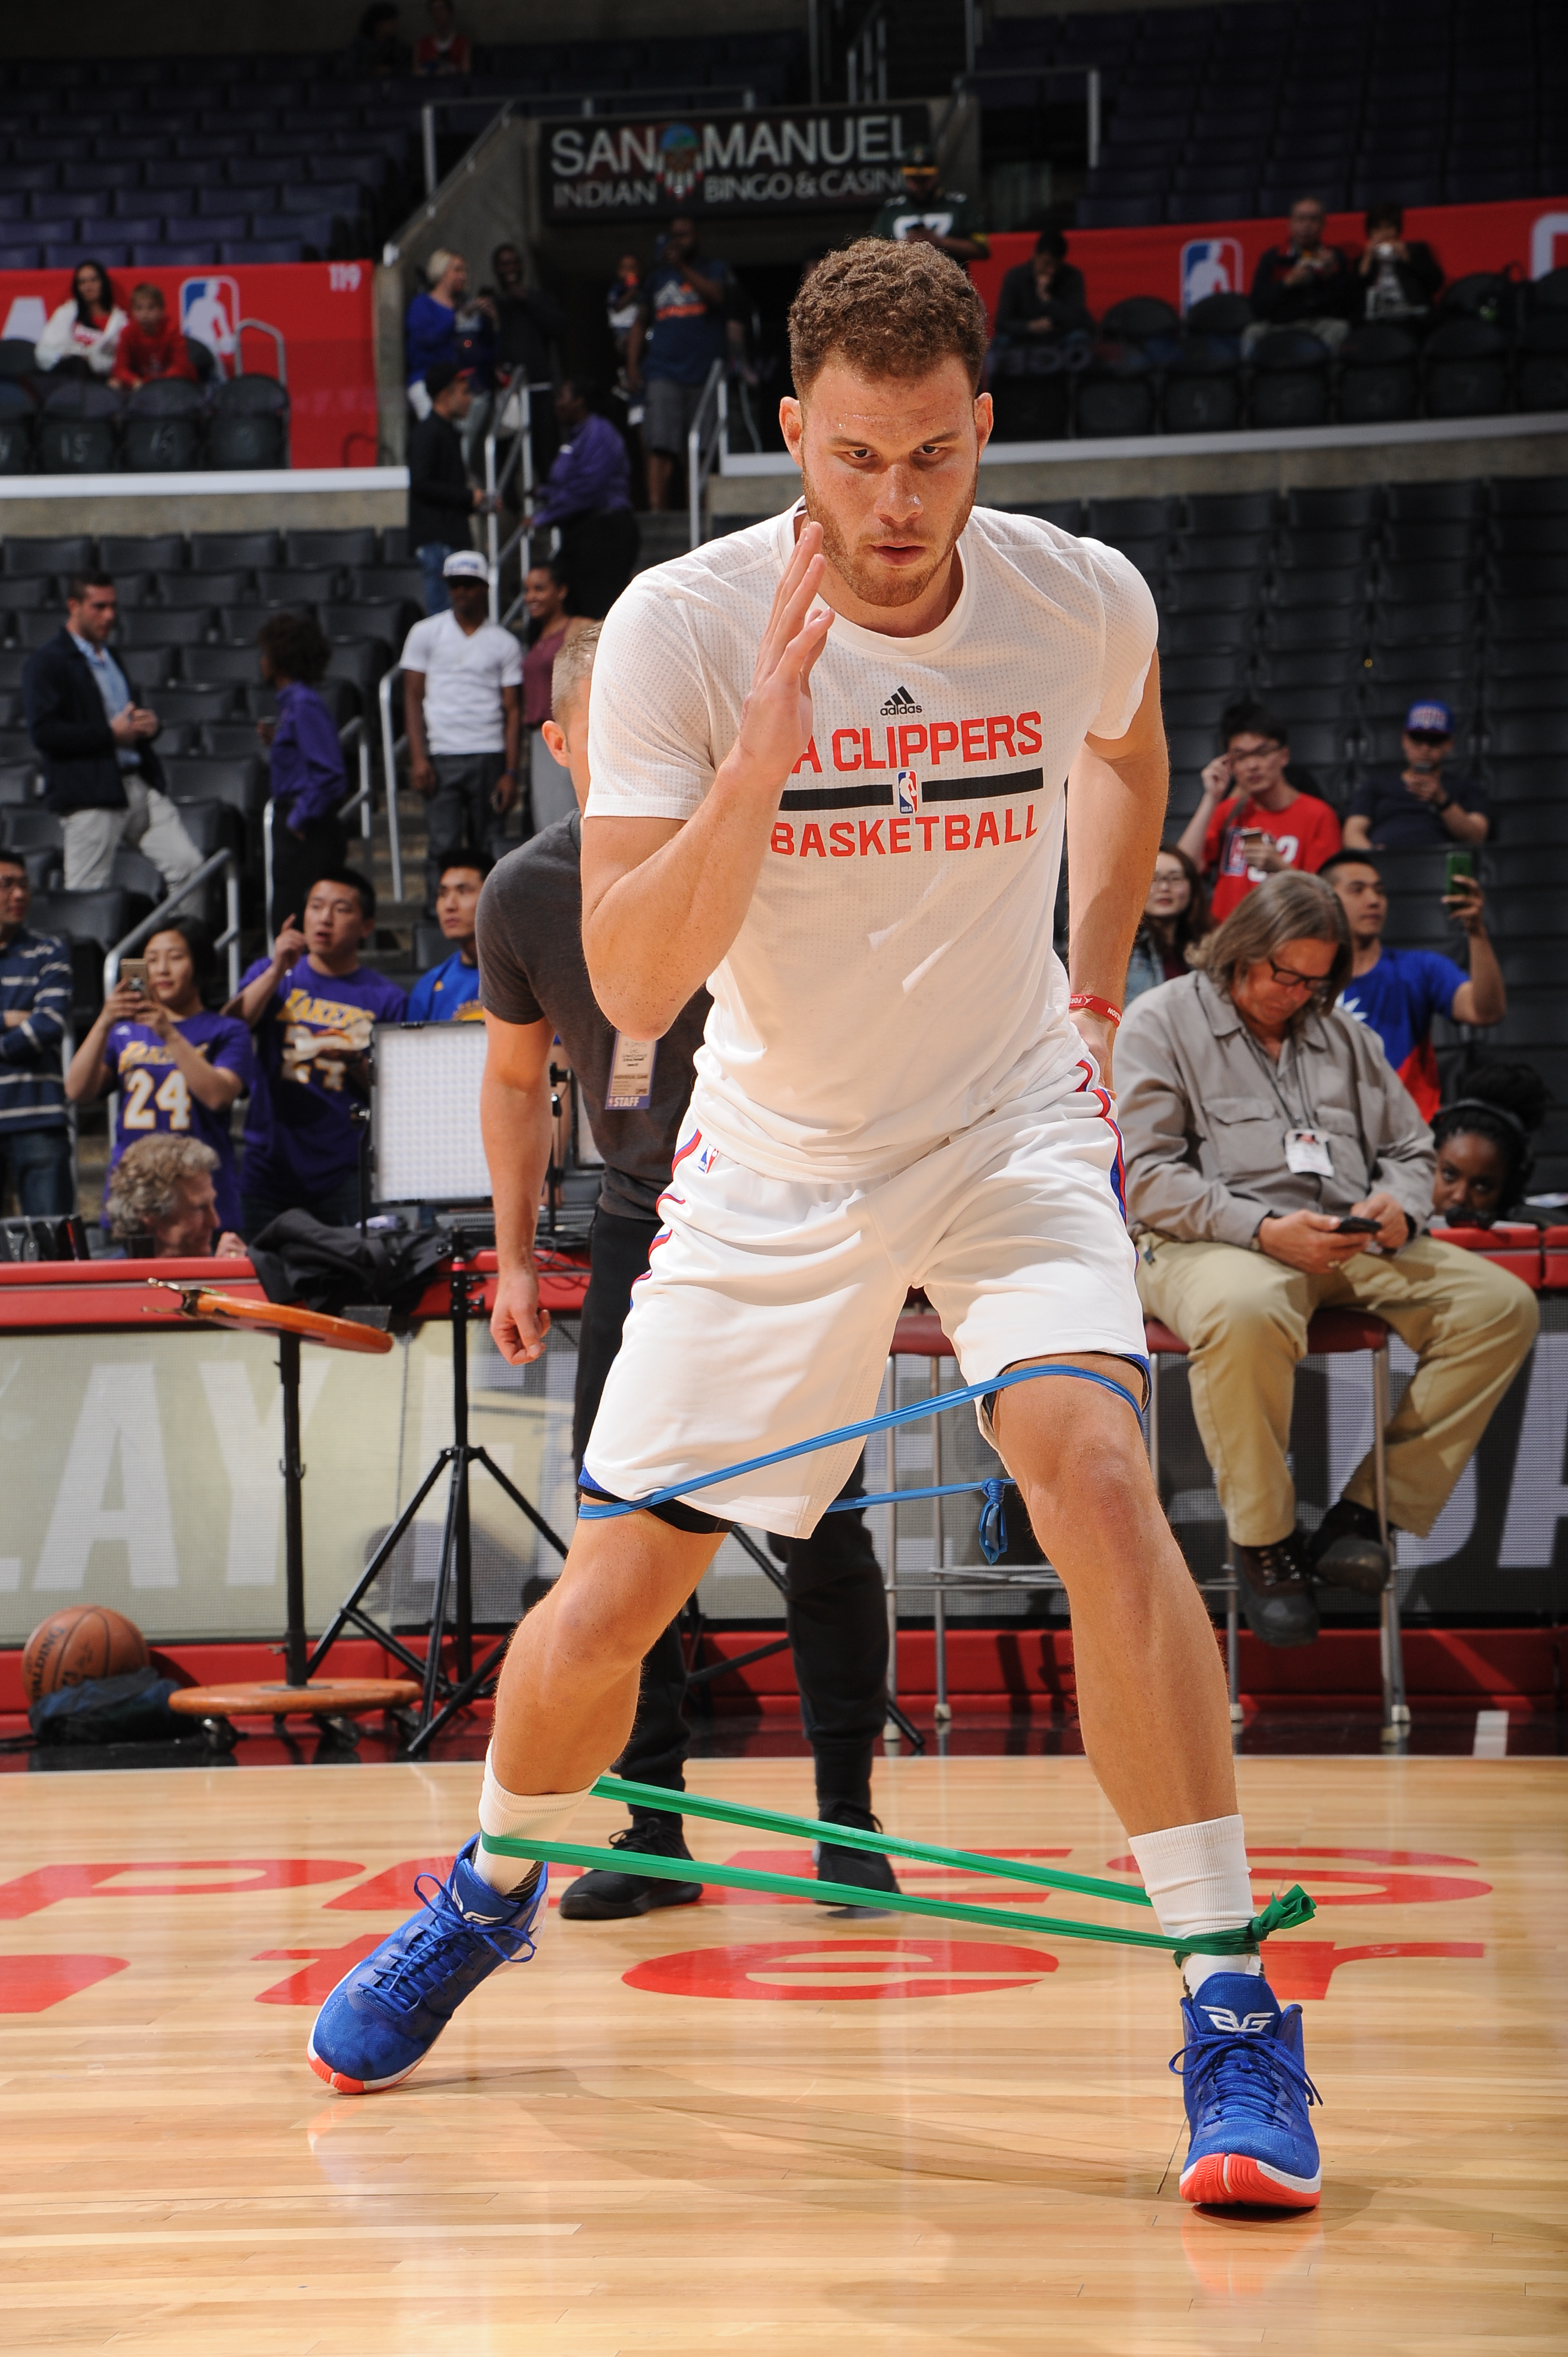 LOS ANGELES, CA - MARCH 24:  Blake Griffin #32 of the Los Angeles Clippers warms up against the Portland Trail Blazers on March 24, 2016 at STAPLES Center in Los Angeles, California. (Photo by Andrew D. Bernstein/NBAE via Getty Images)